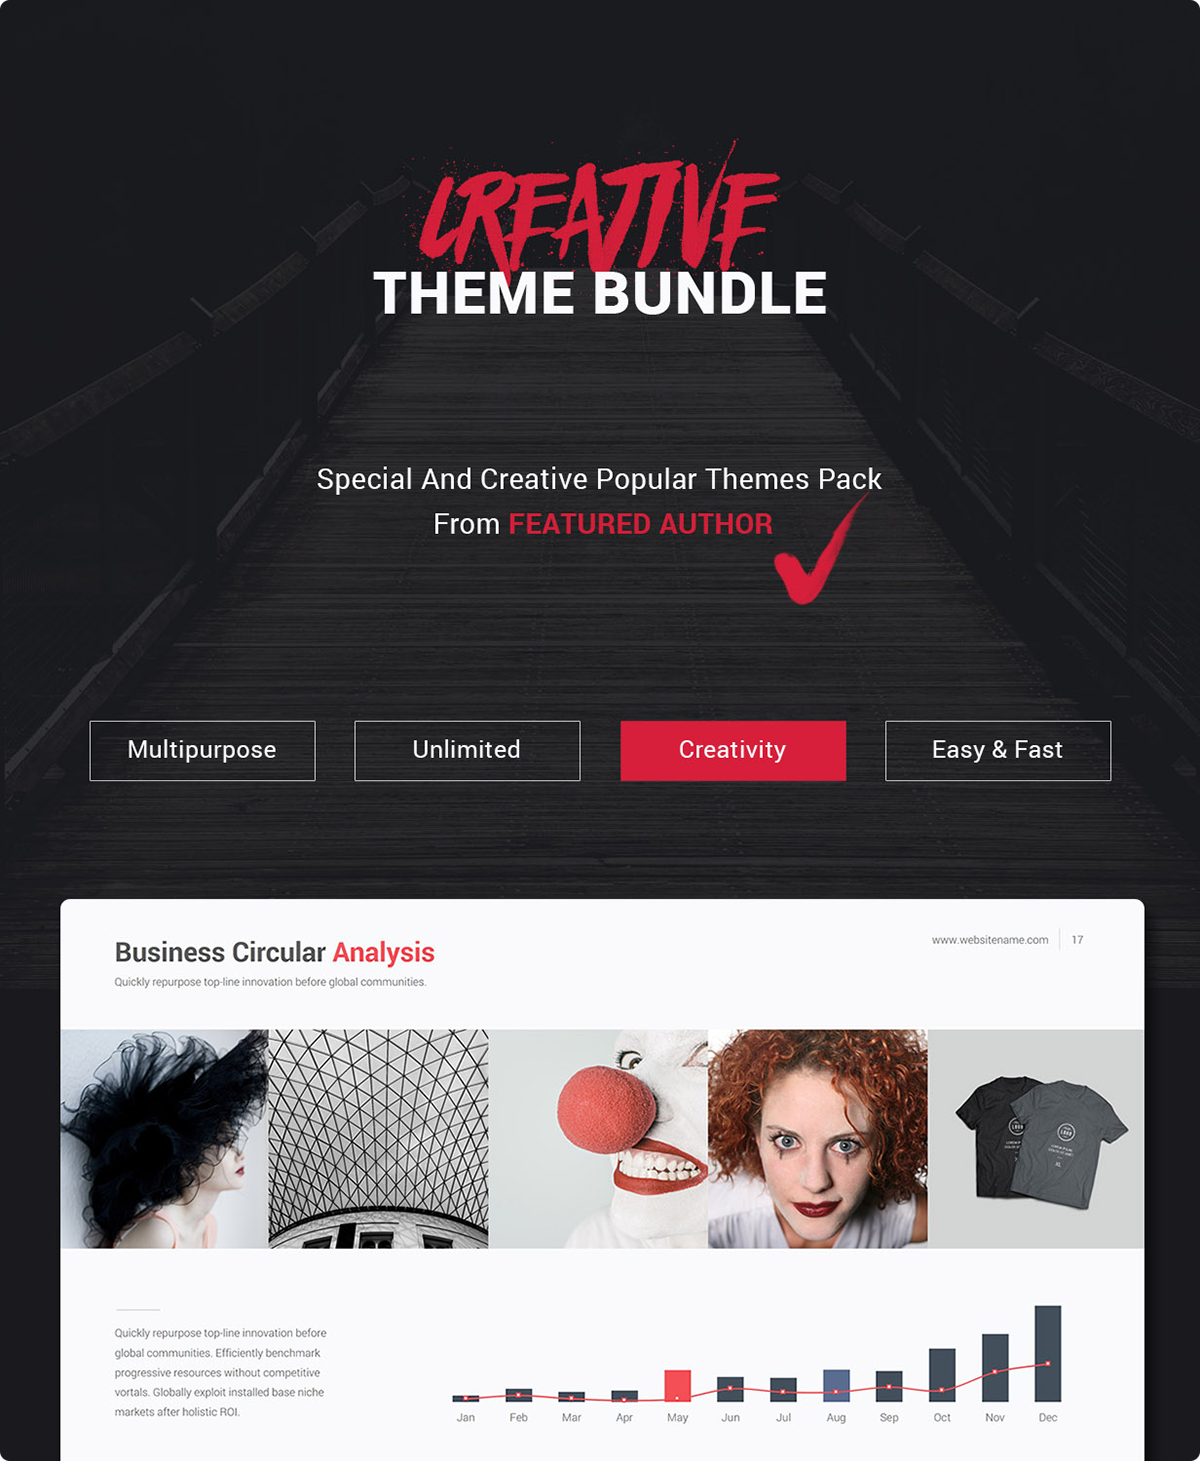 Special Creative Theme Bundle